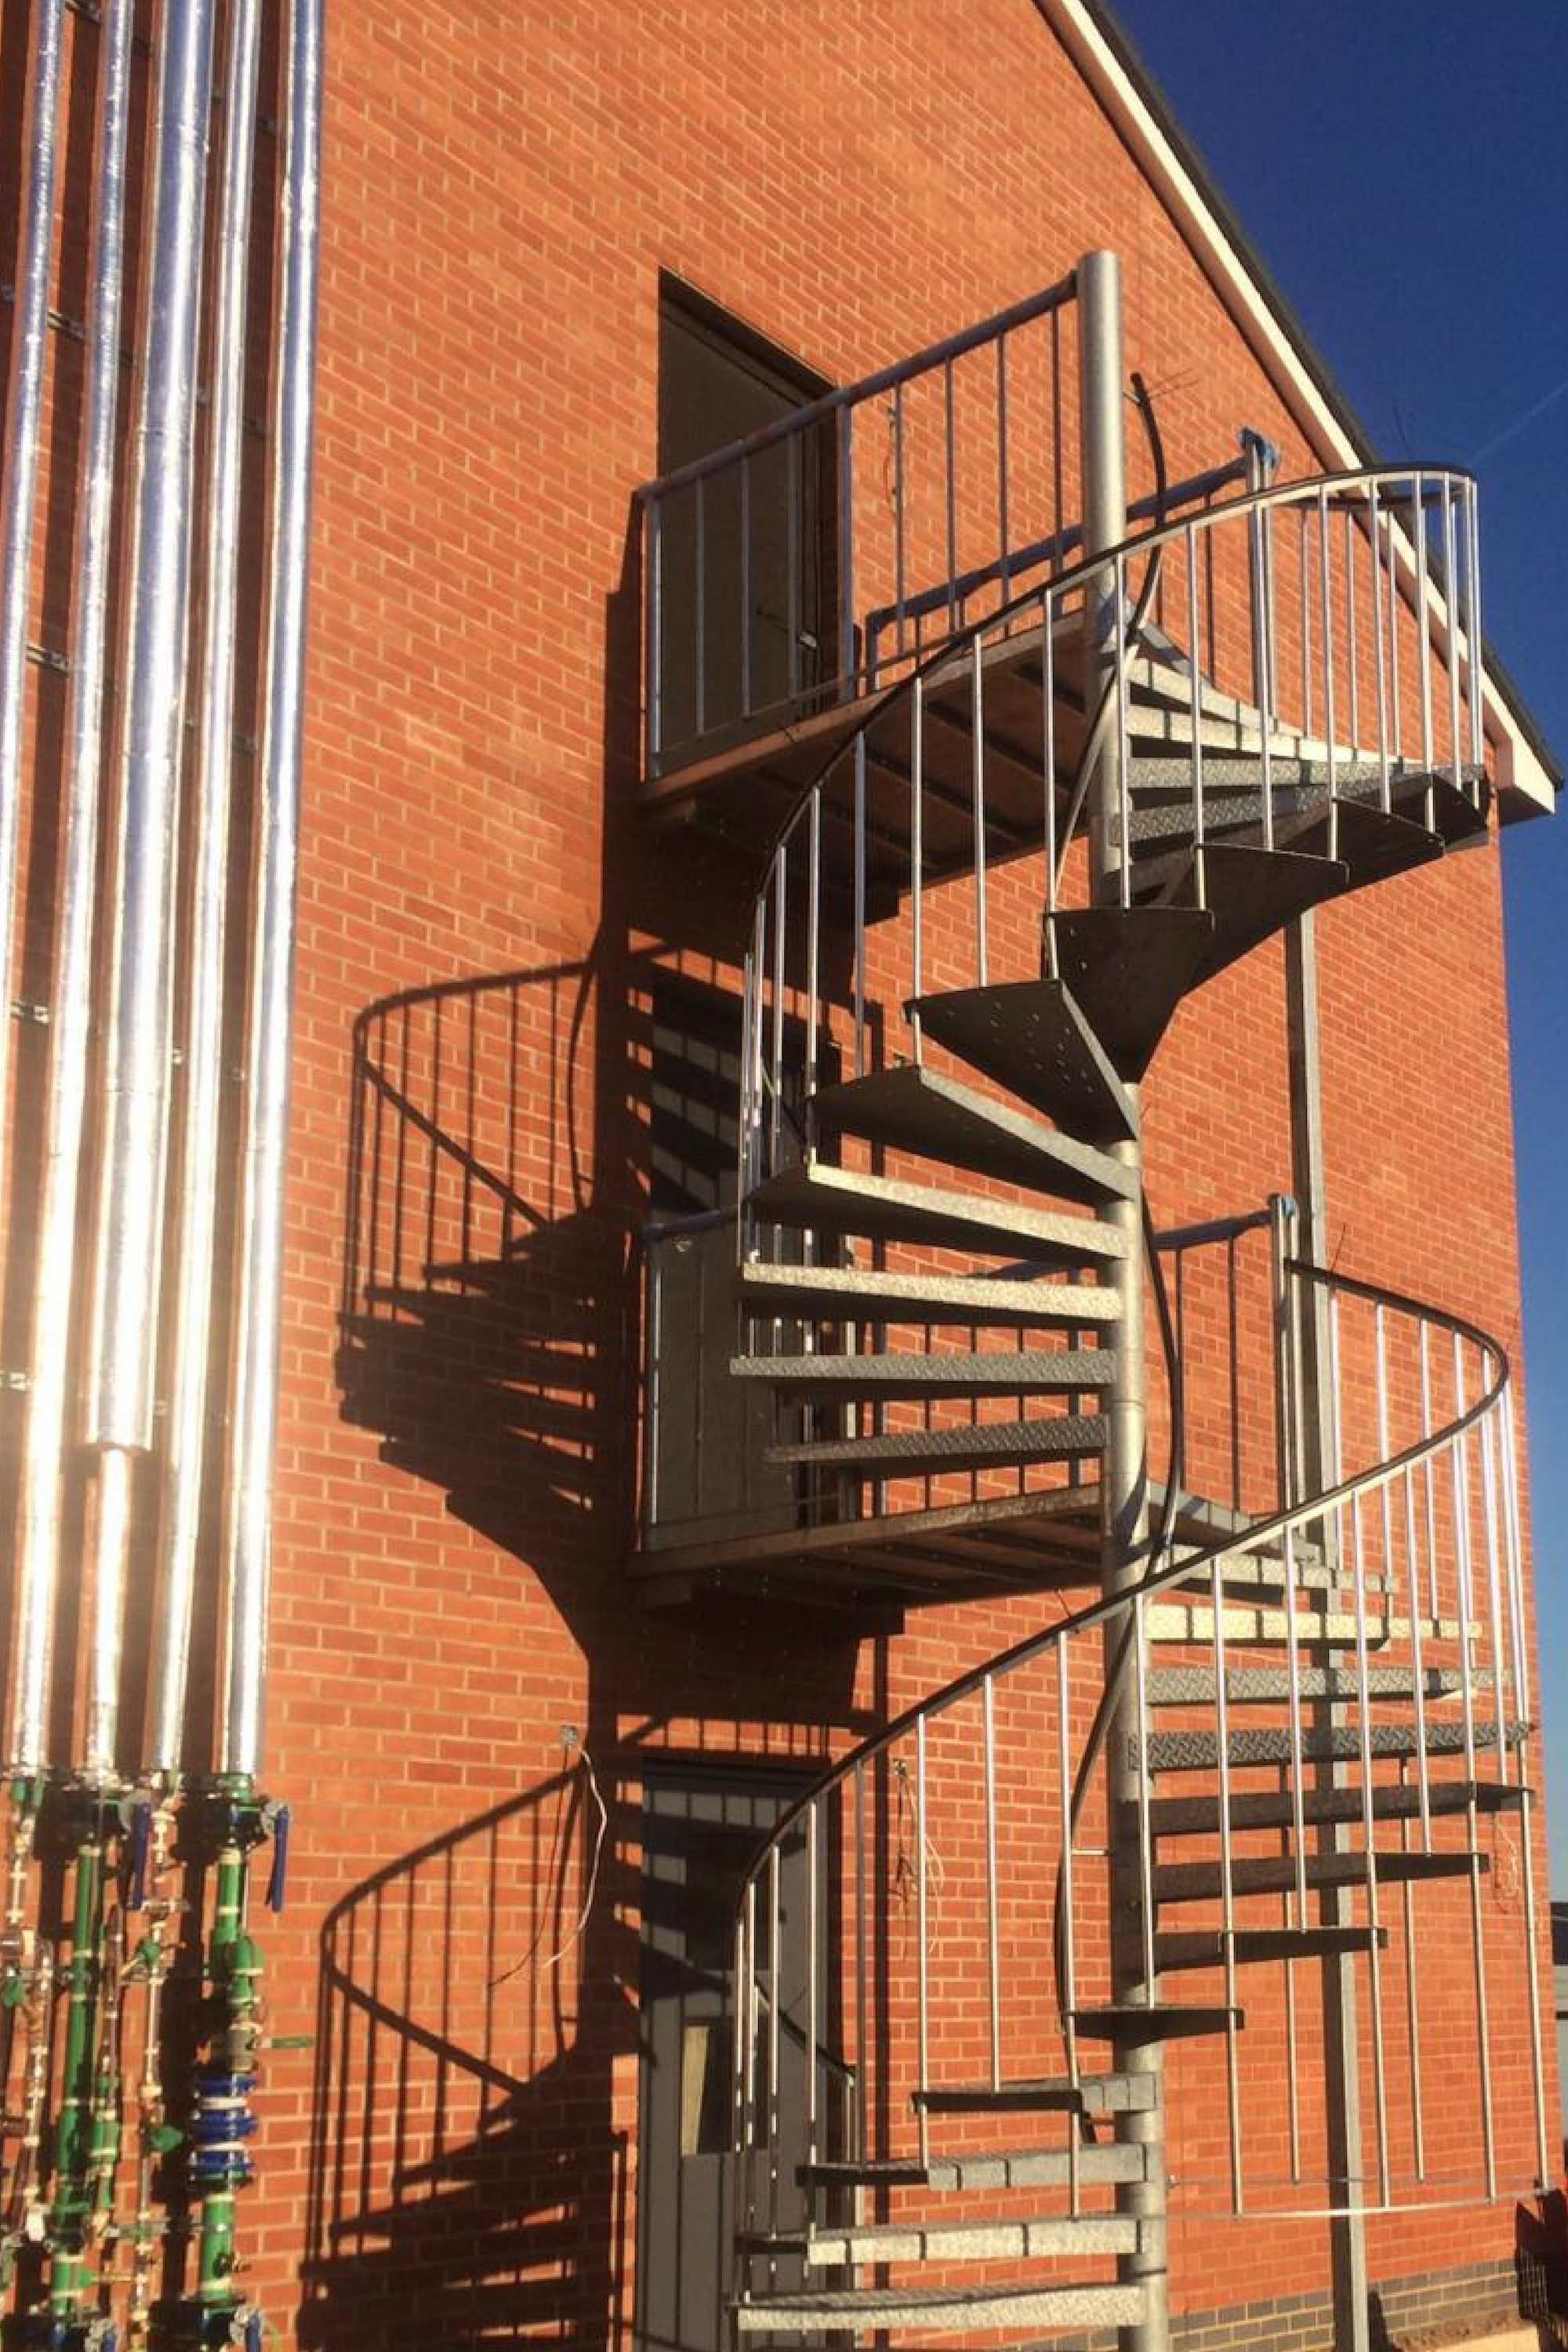 External steel spiral staircase